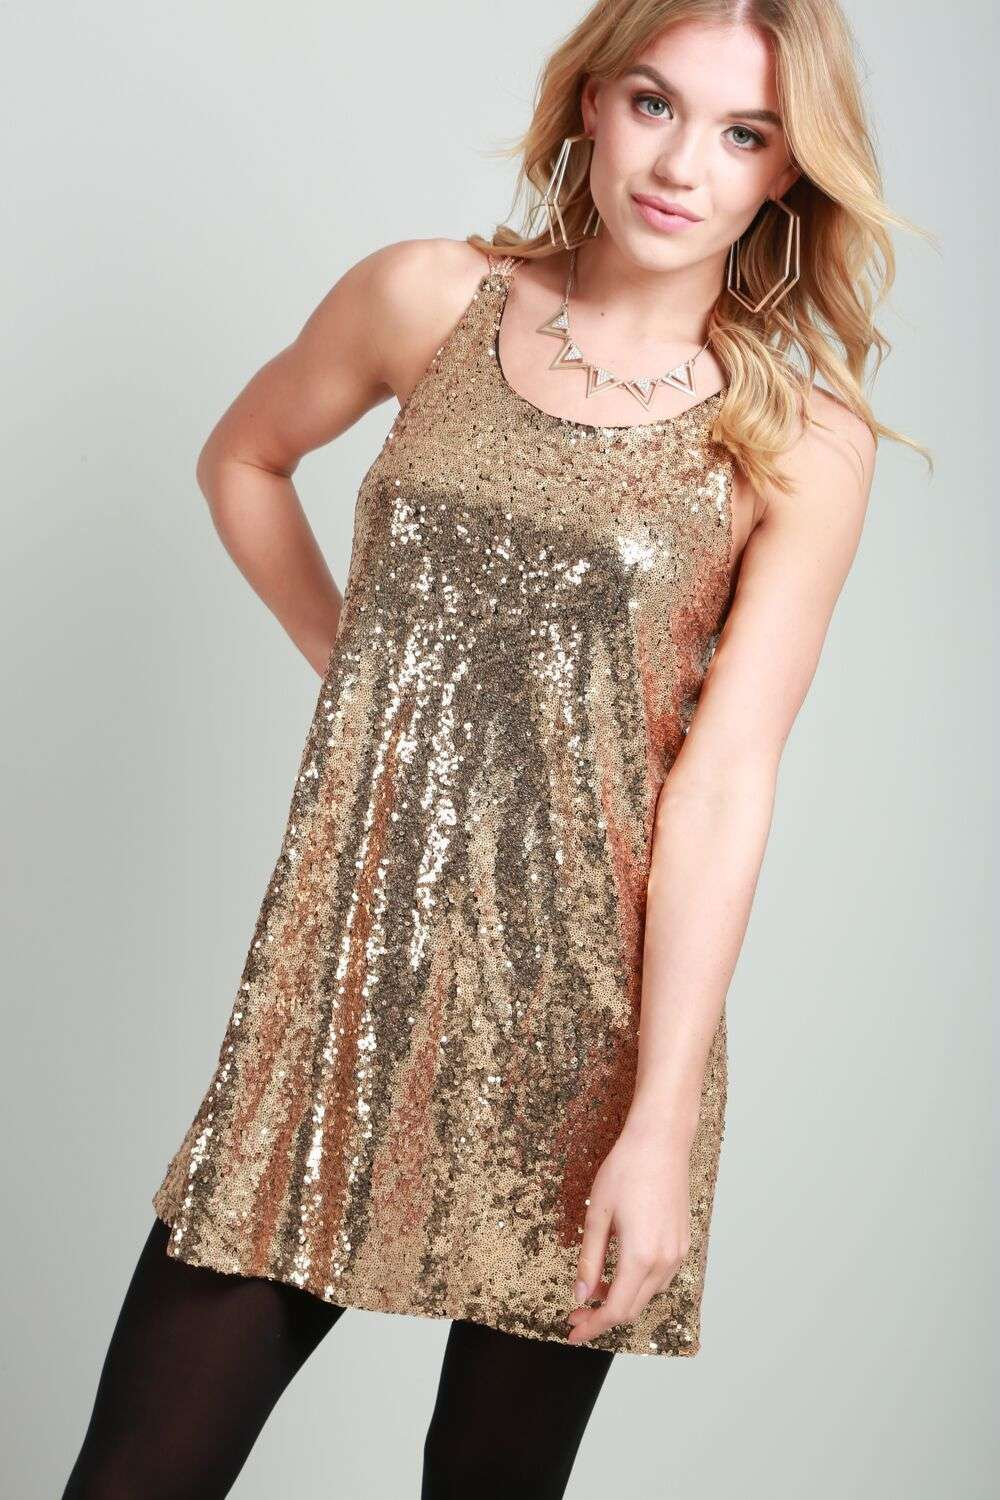 Emilia Racer Back Sequin Mini Swing Dress - bejealous-com